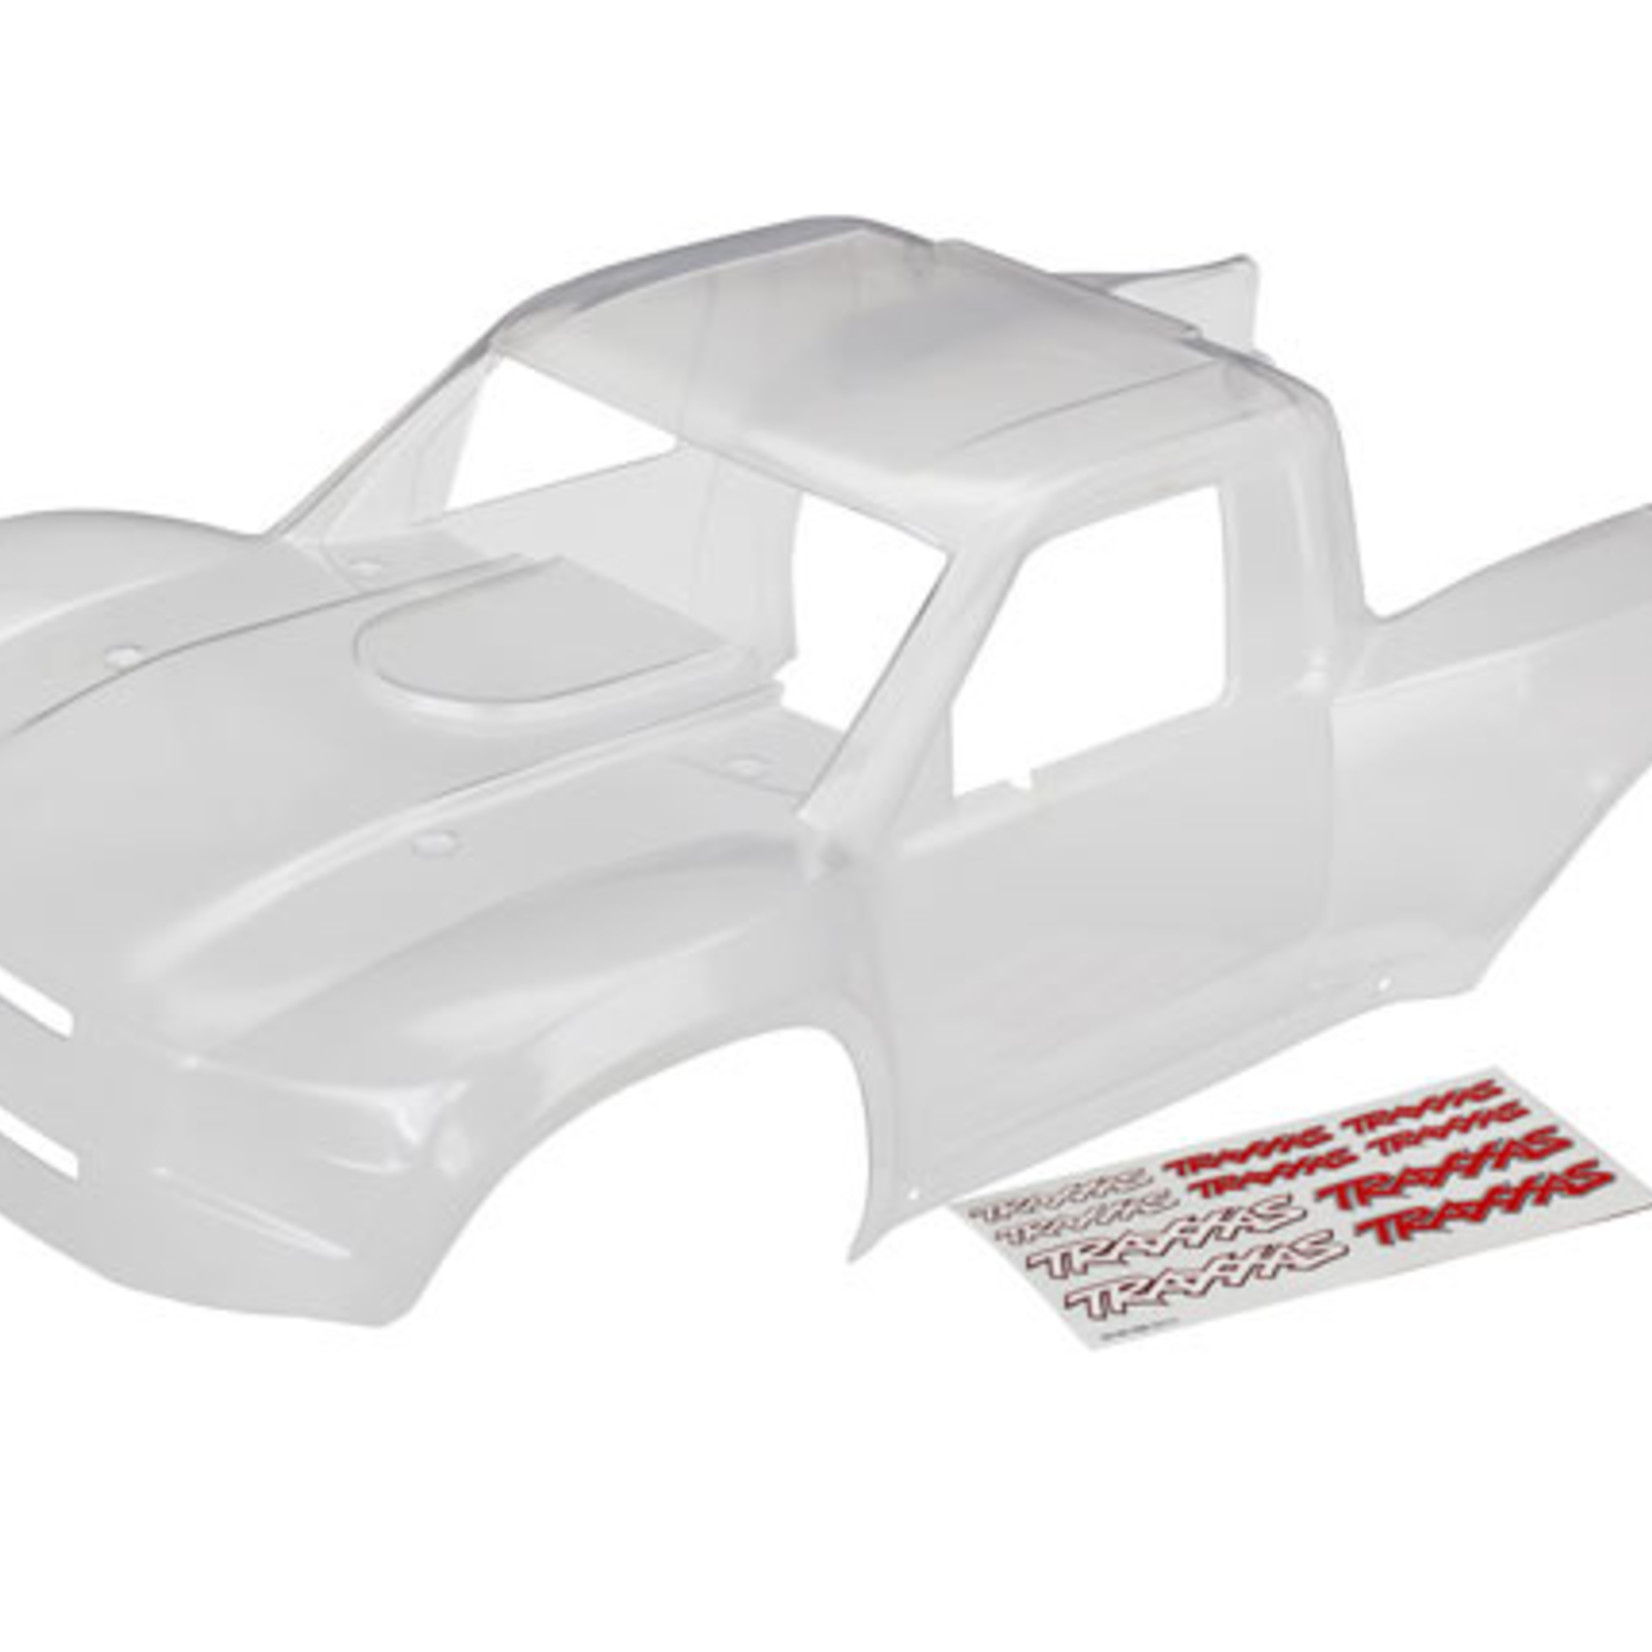 Traxxas TRA8511 Traxxas Body, Desert Racer (clear, trimmed, requires painting)/ decal sheet